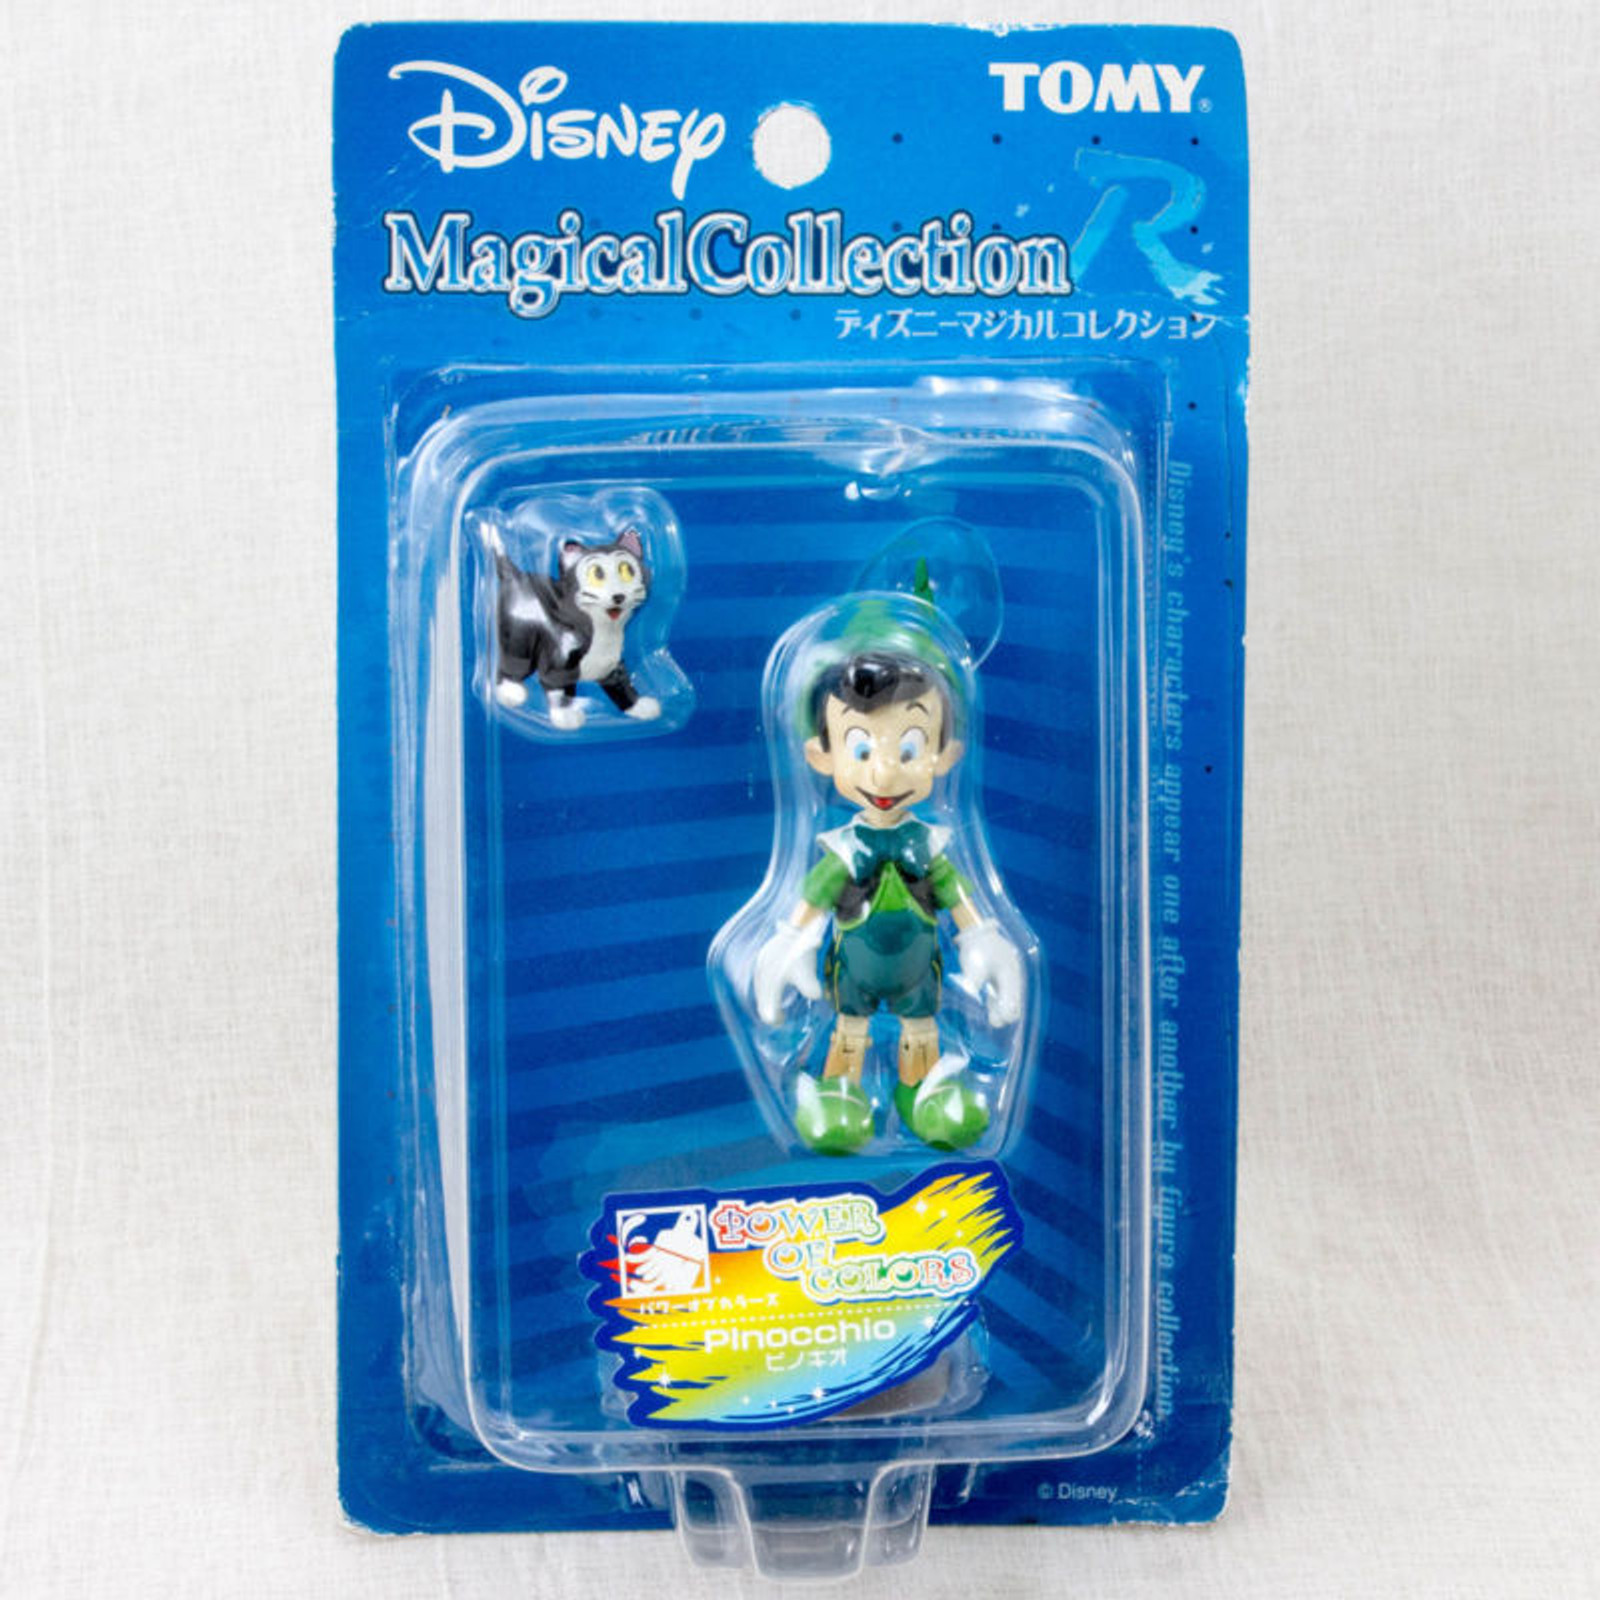 Pinocchio Disney Magical Collection R Figure (Power of Colors ver.) Tomy JAPAN ANIME